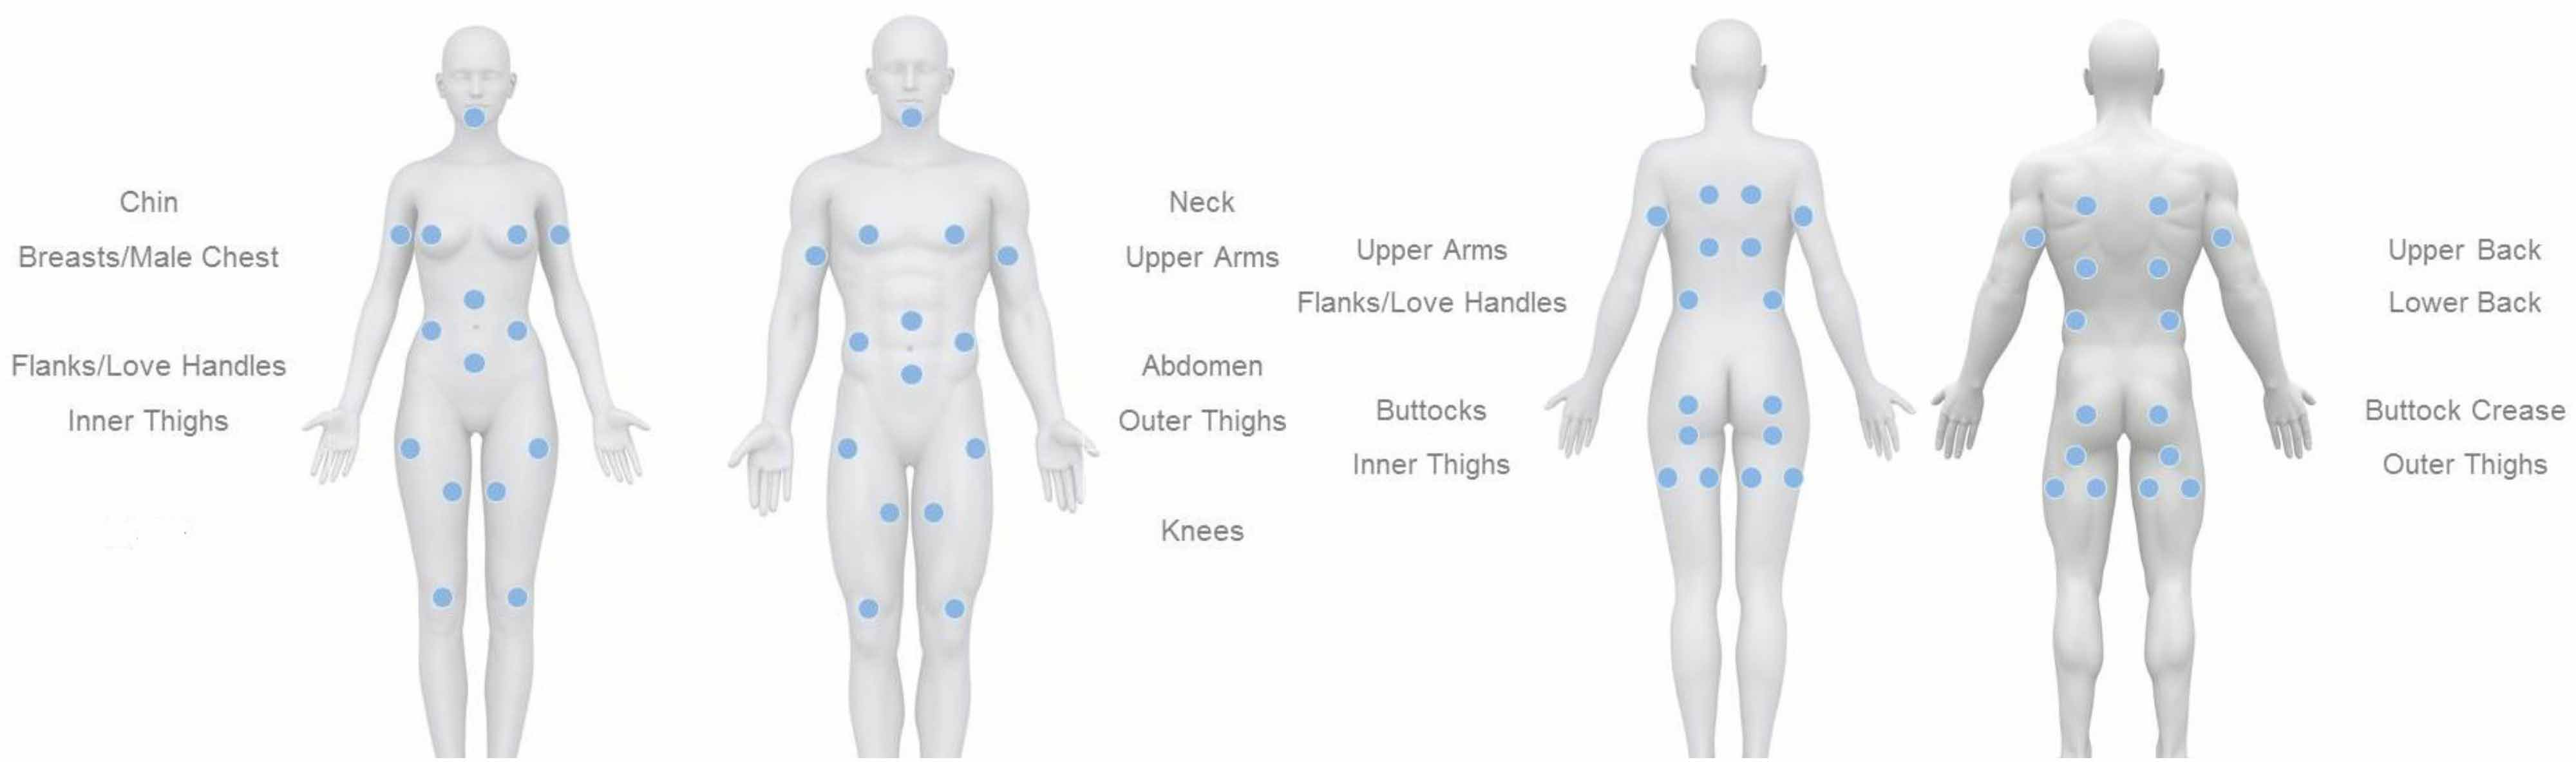 vaser-liposuction-areas-the-private-clinicWEB